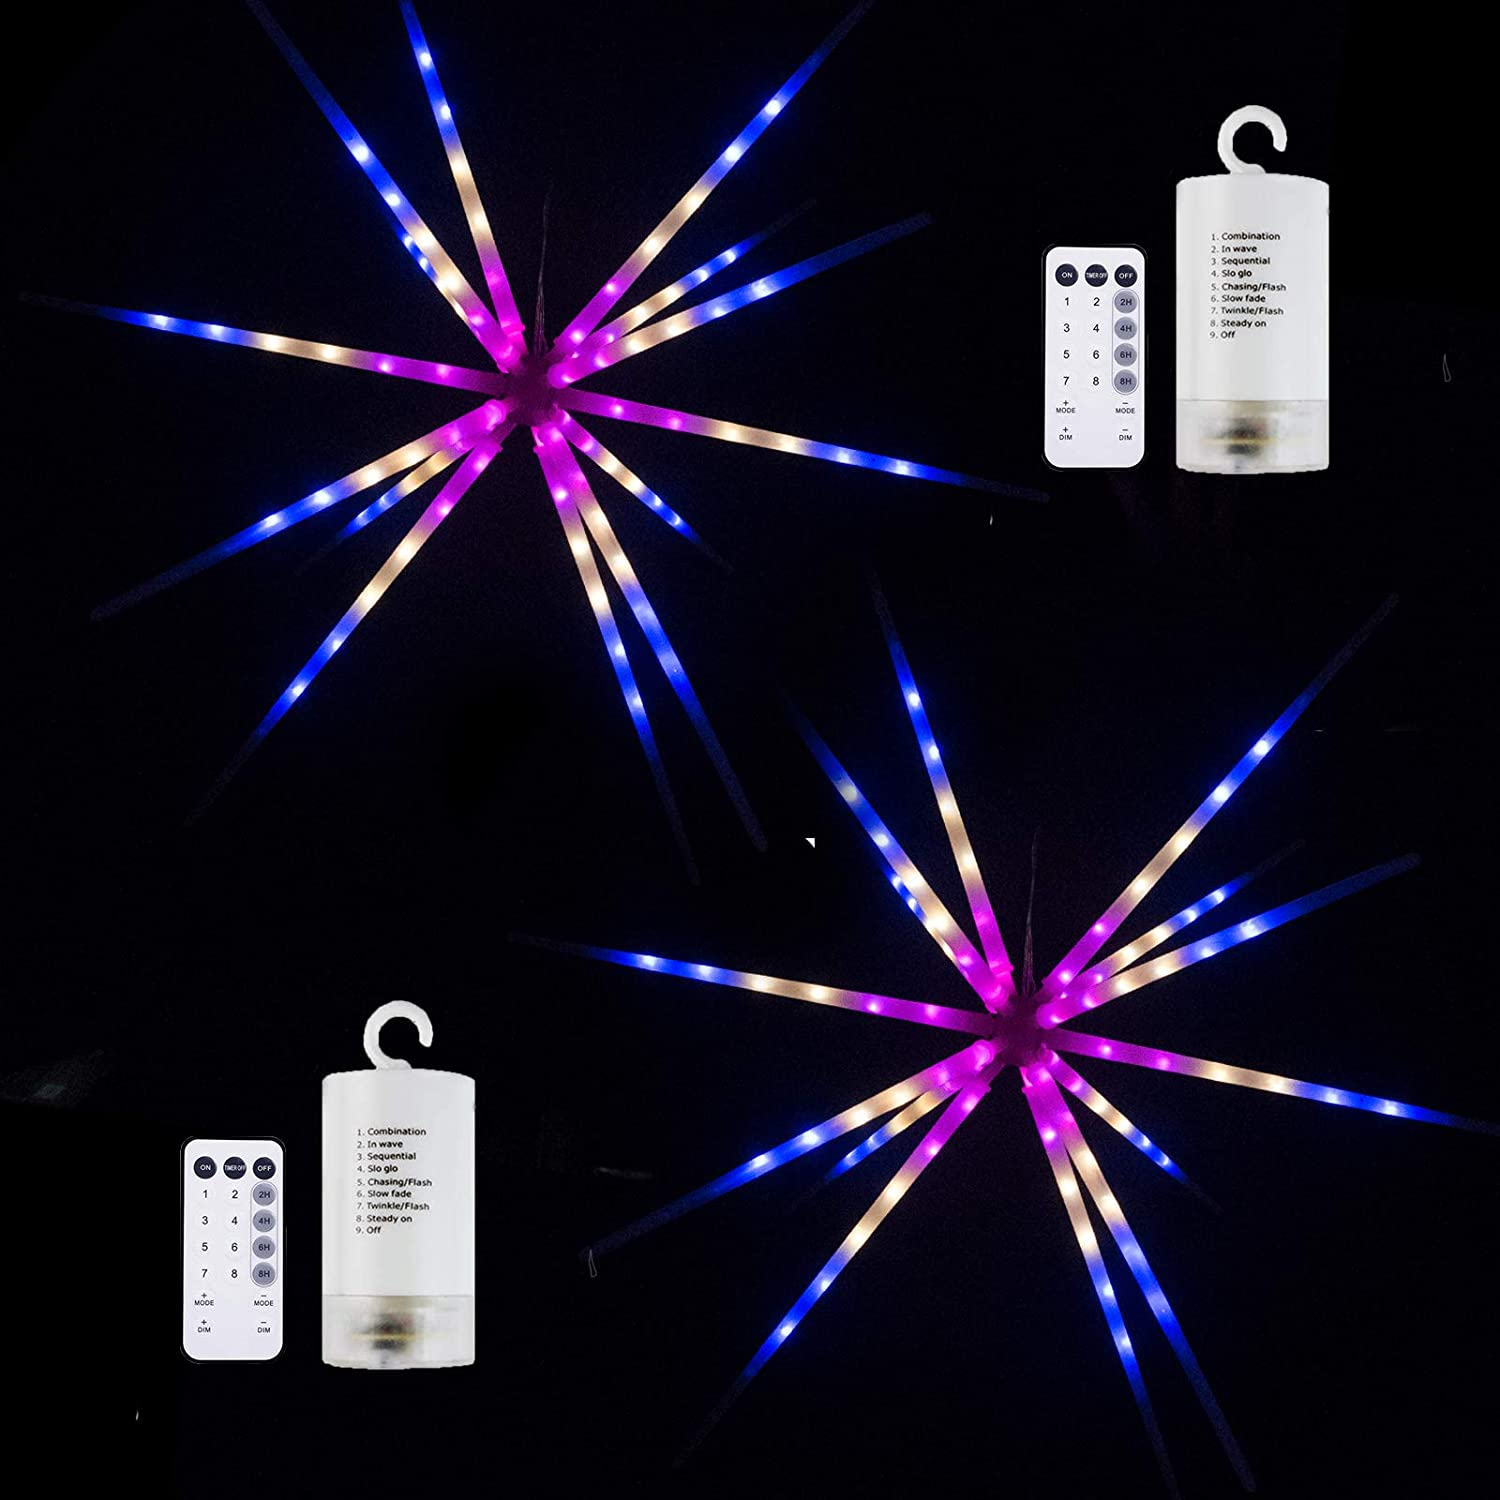 2Pack-Outdoor Hanging Firework Light Multicolor 112LEDs Starburst Lights Timer Setting Speed Changing Indoor 4xAA Battery Powered with Remote Controller for Wedding, Party Light Home Improvement